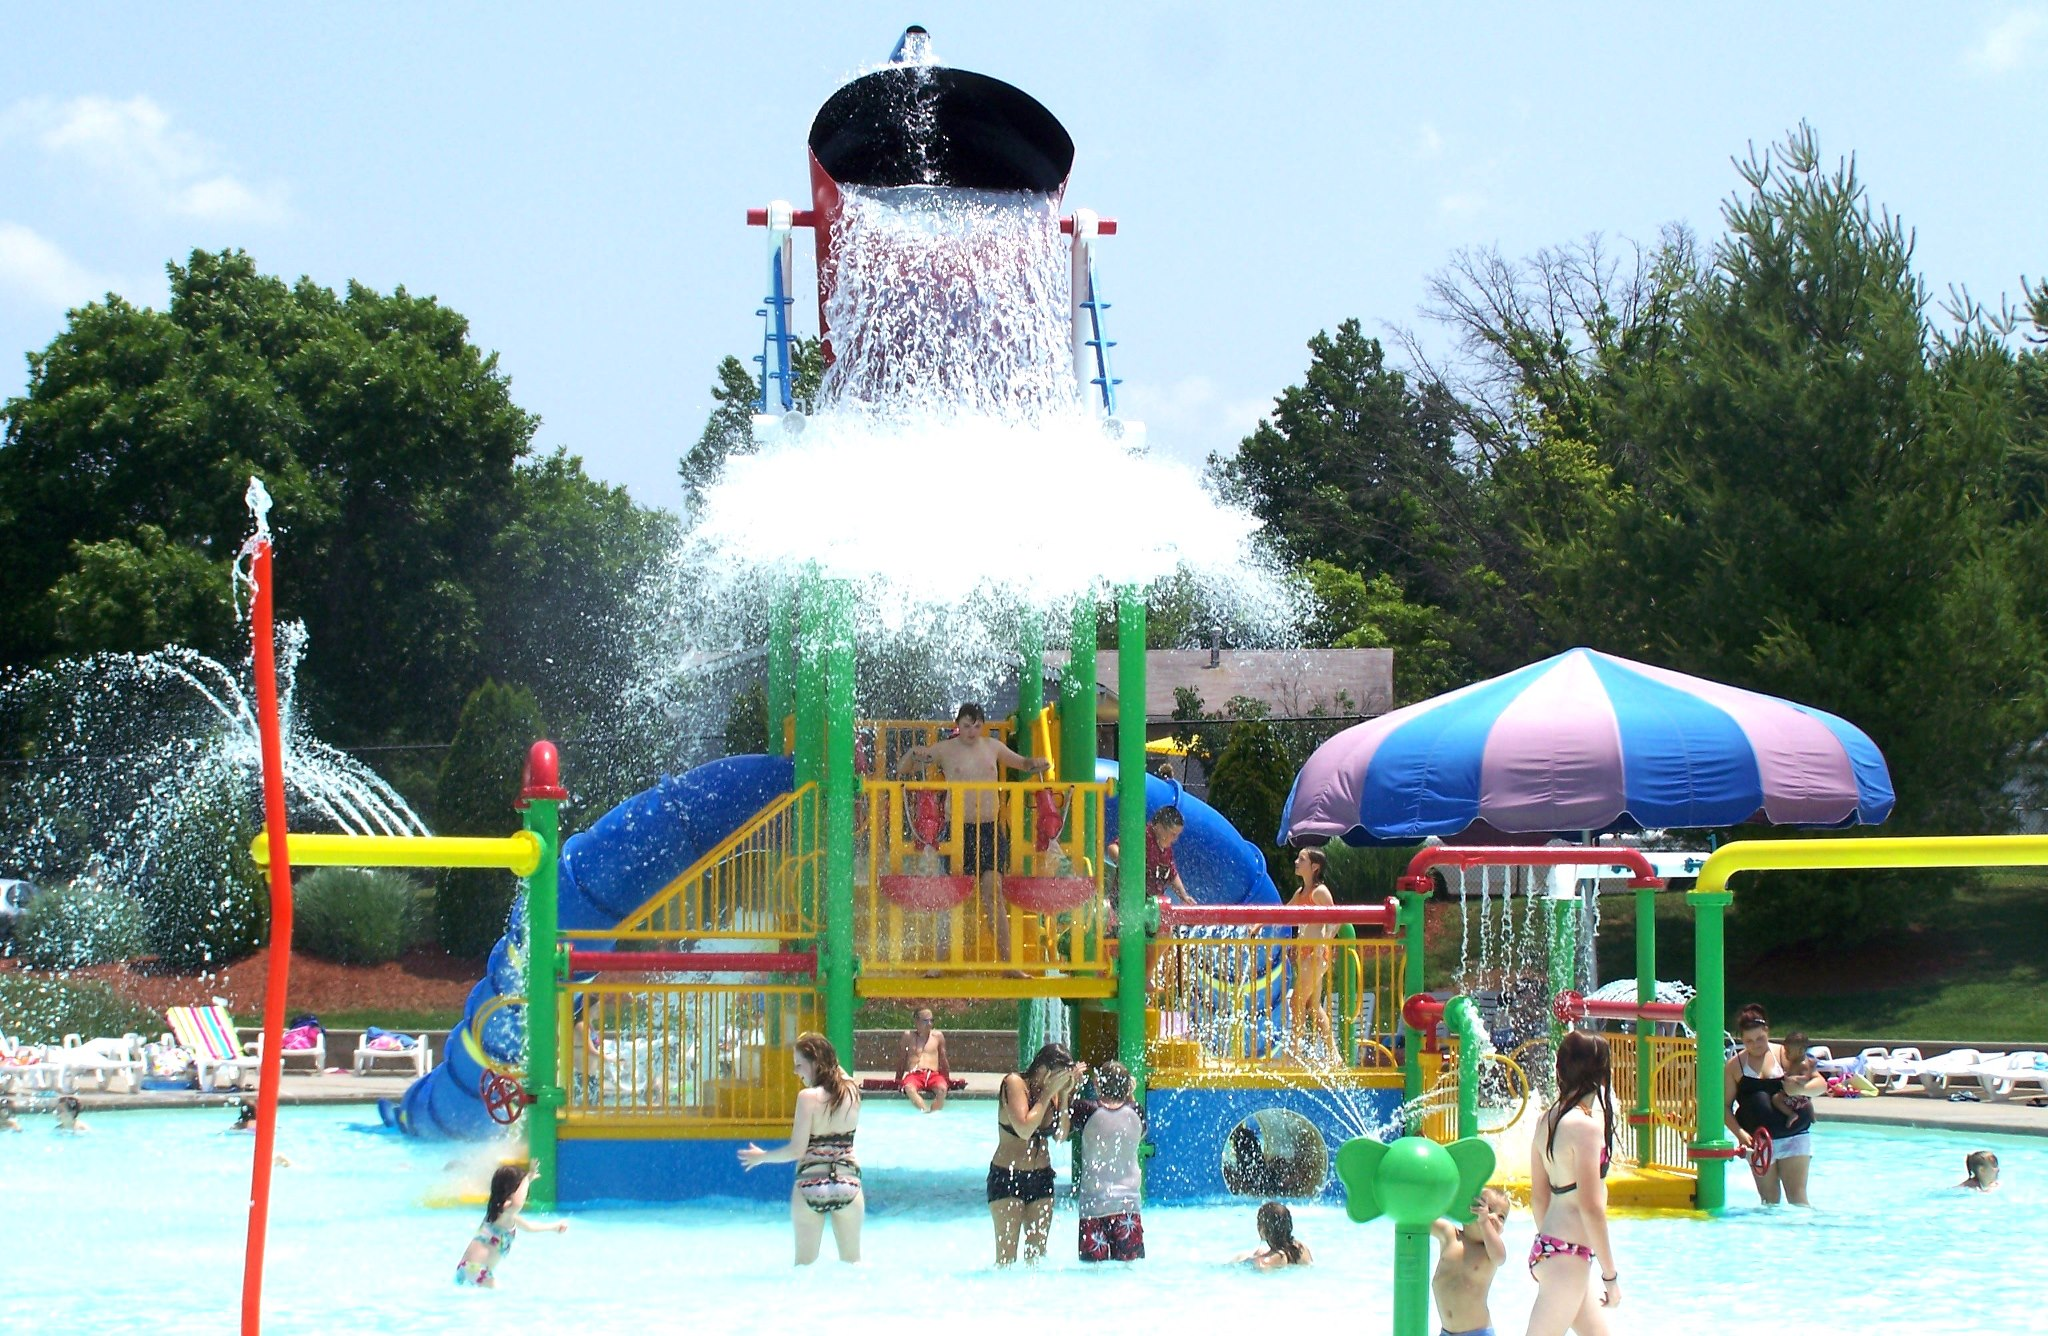 The Opening of the Farmington Water Park